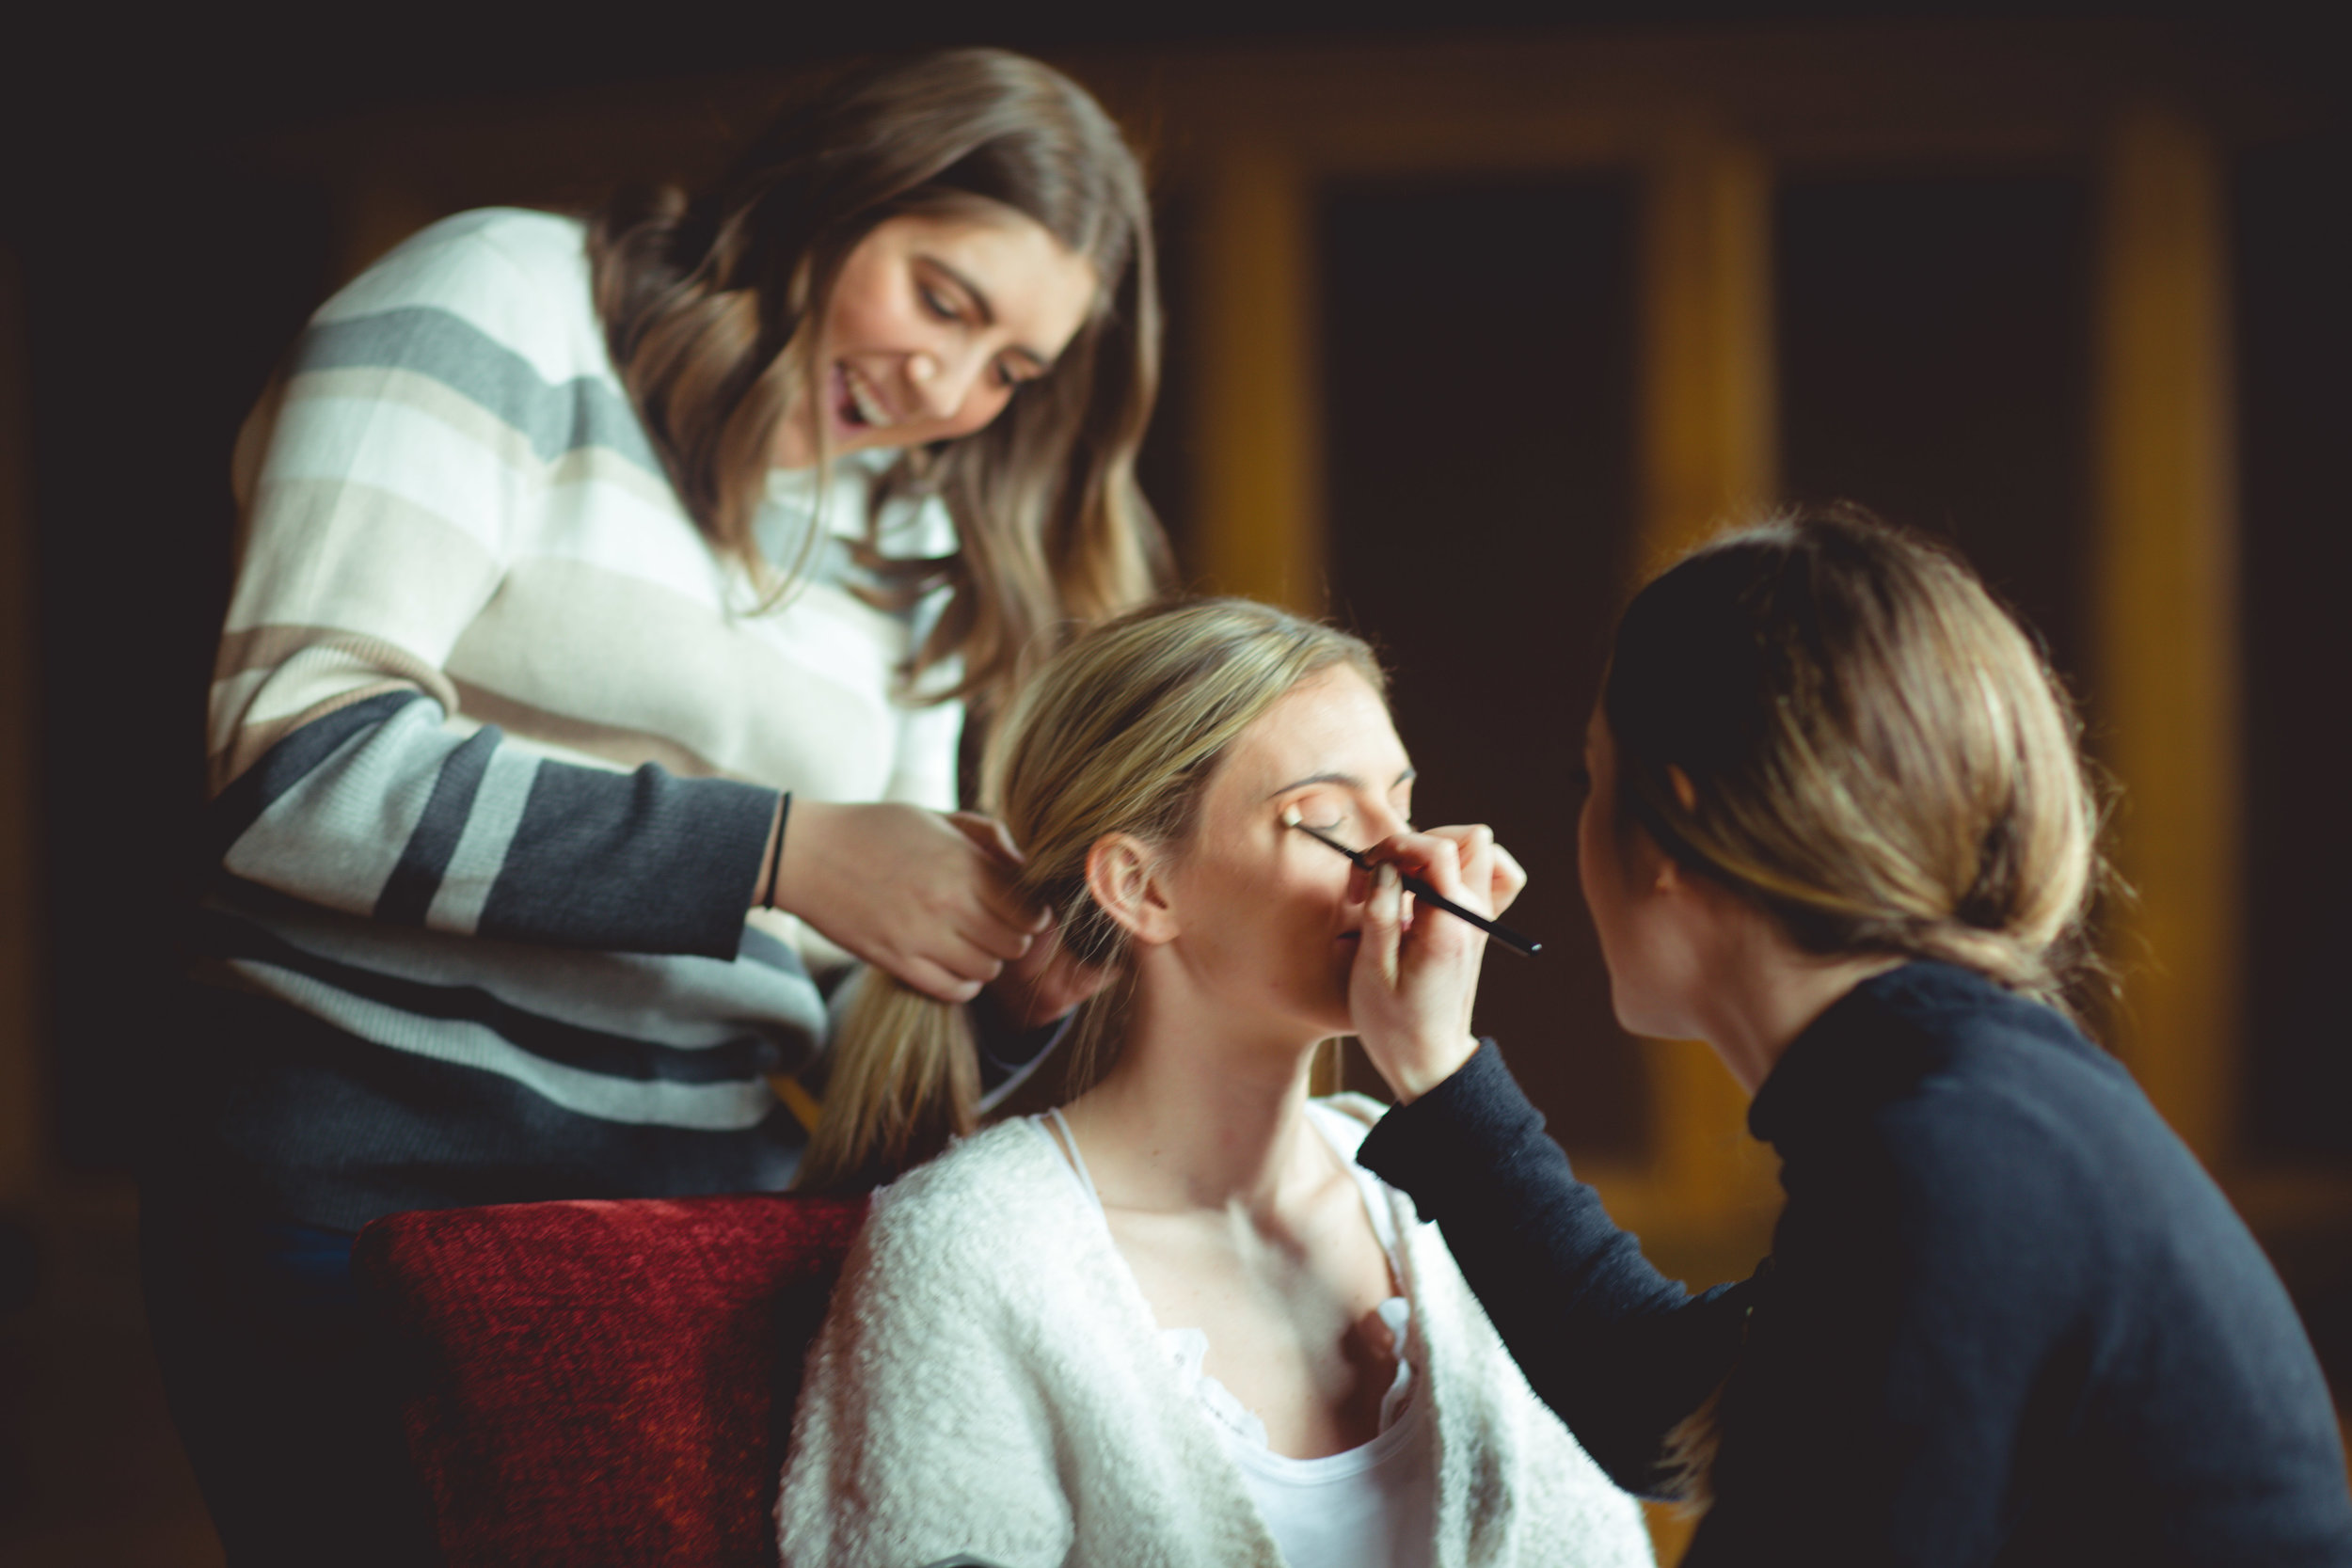 bride getting ready for wedding spokane makeup